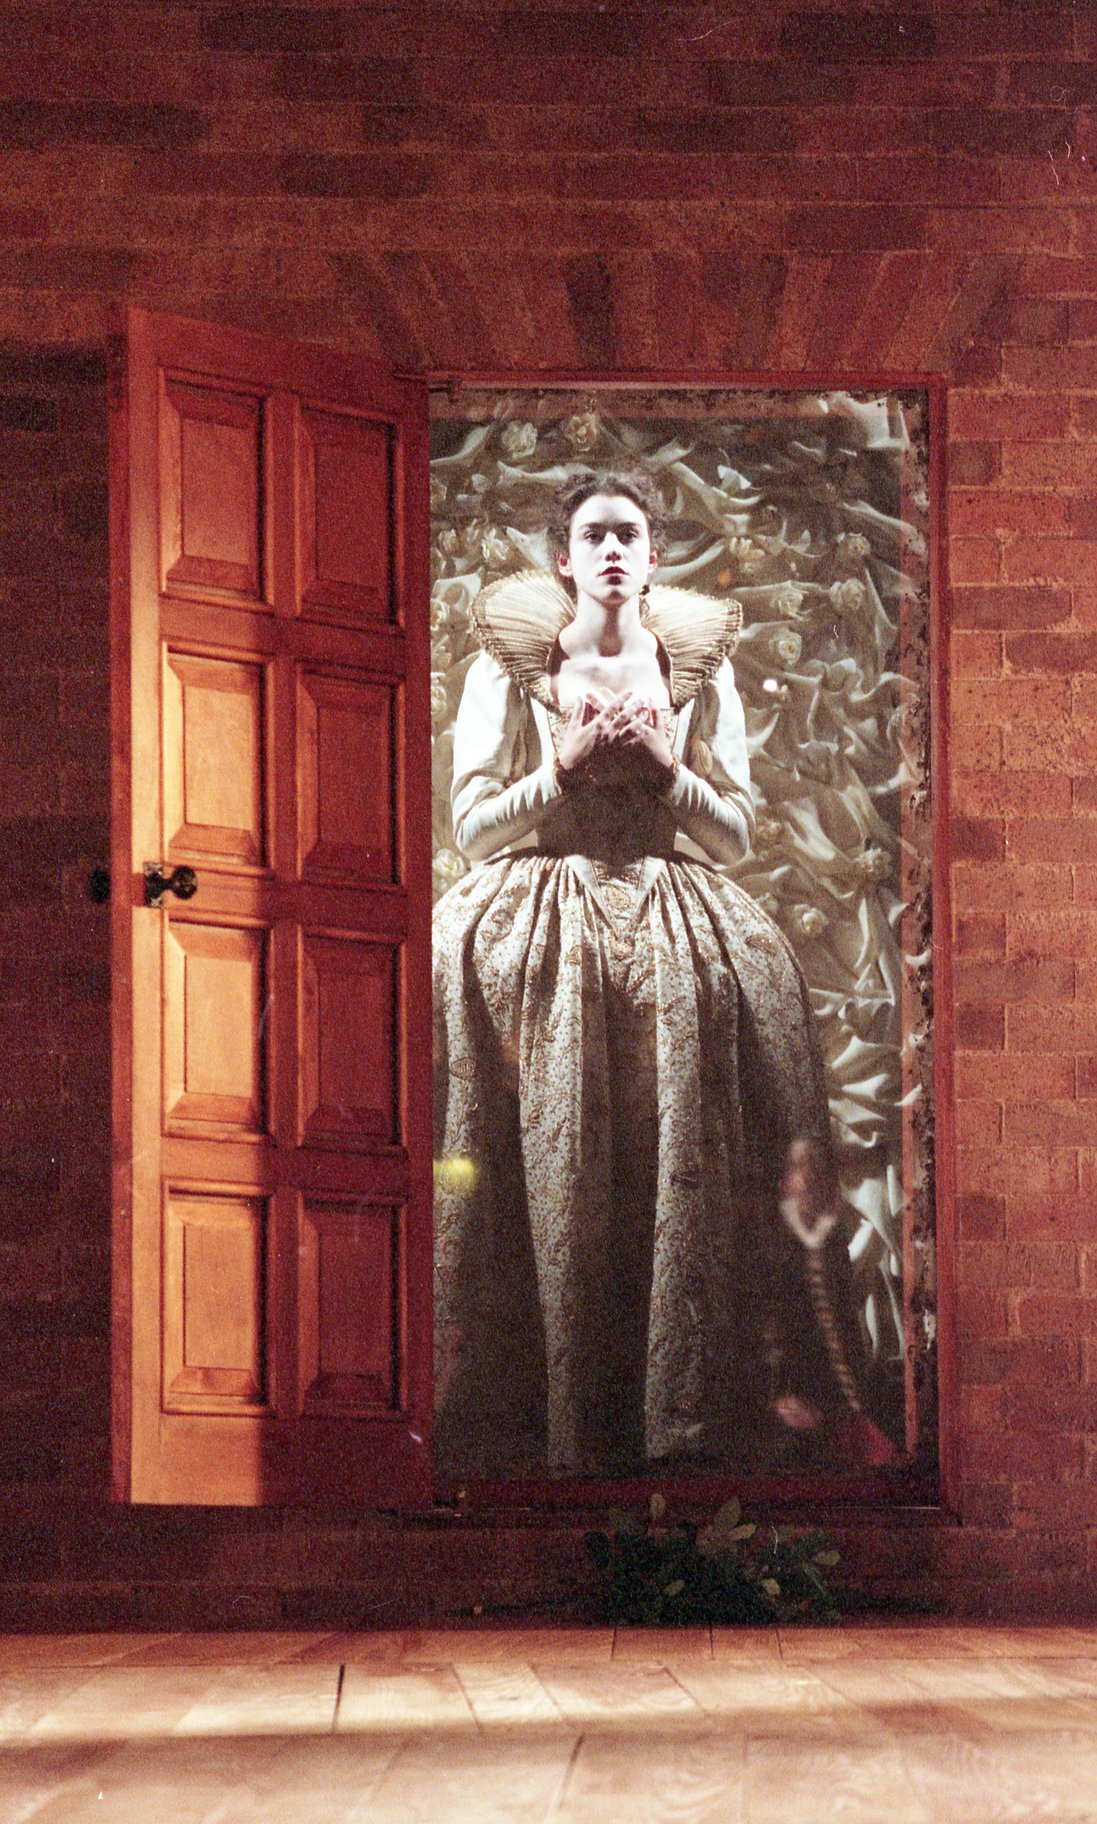 A door opens to show a woman in white against a ruffled white background, like the inside of a coffin.